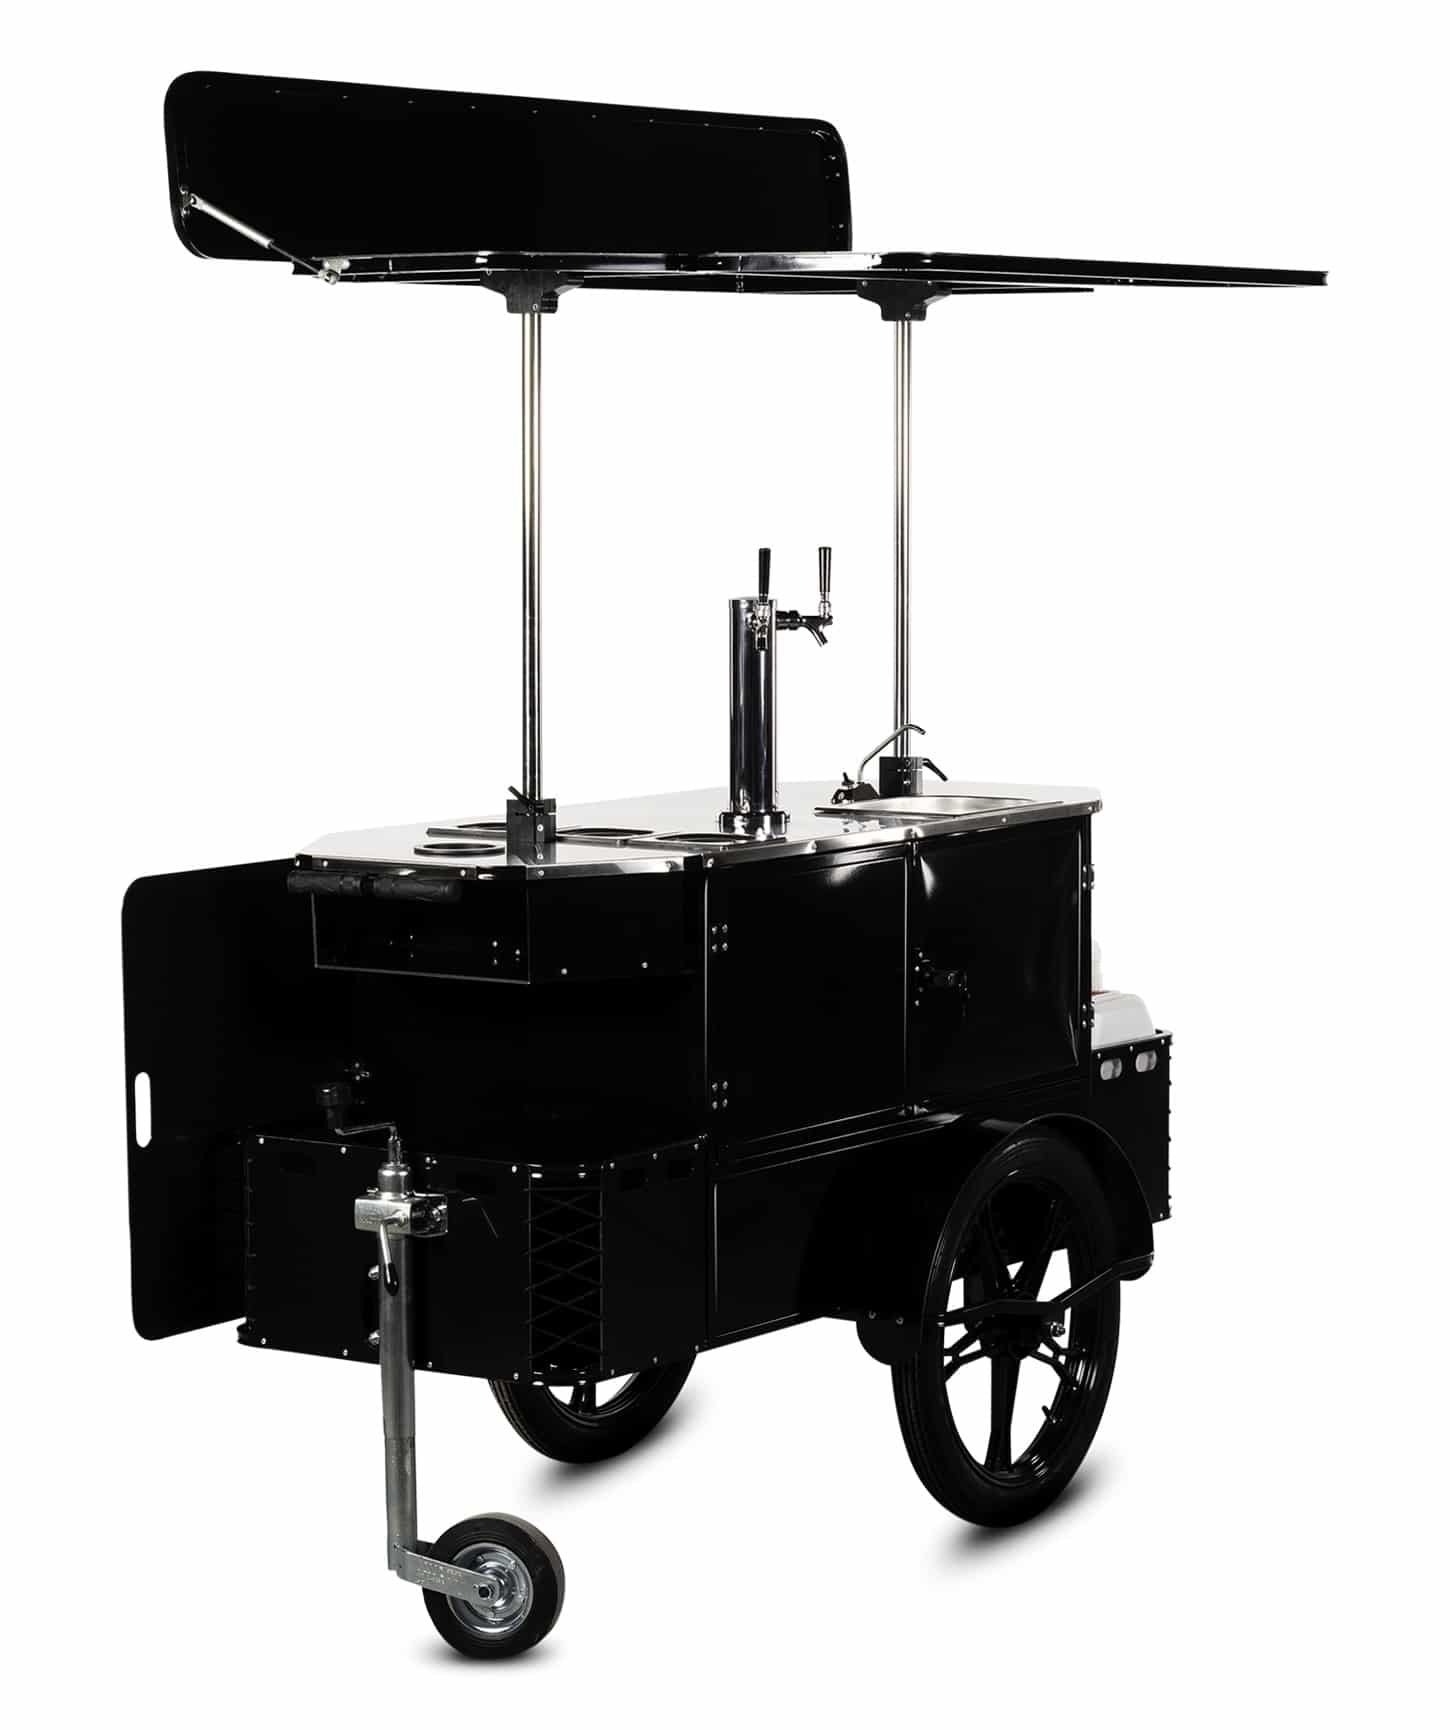 Bizz On Wheels beverage cart perspective view